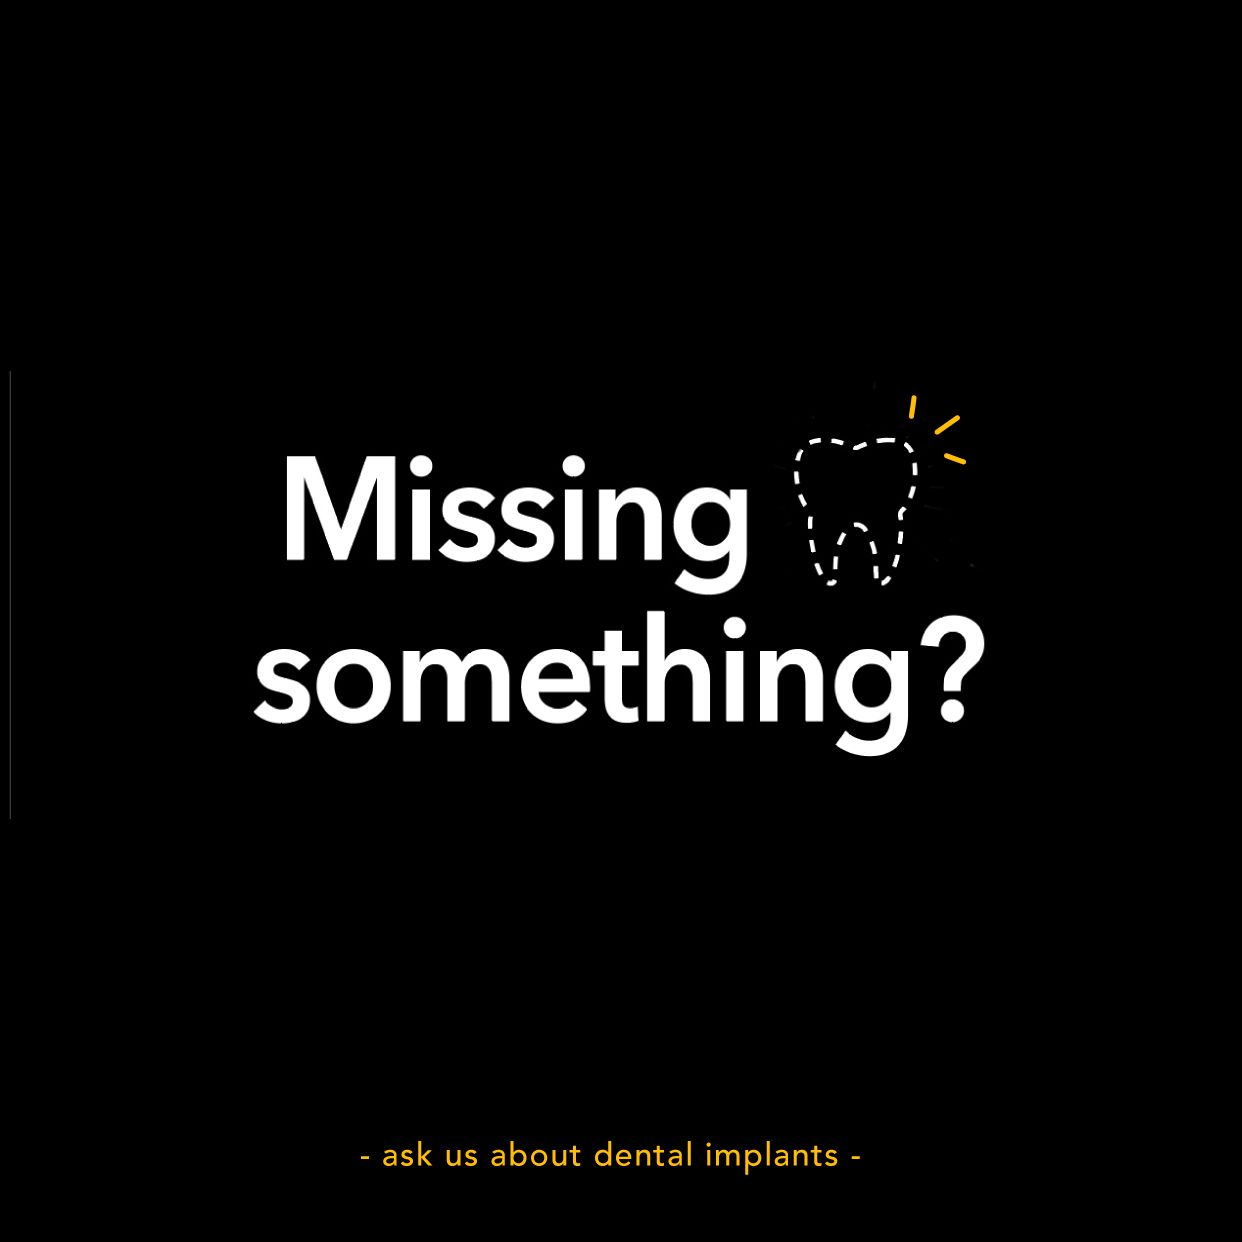 Dental Implant Quotes Missing A Tooth Ask Us About Dental Implants We Want To Give You